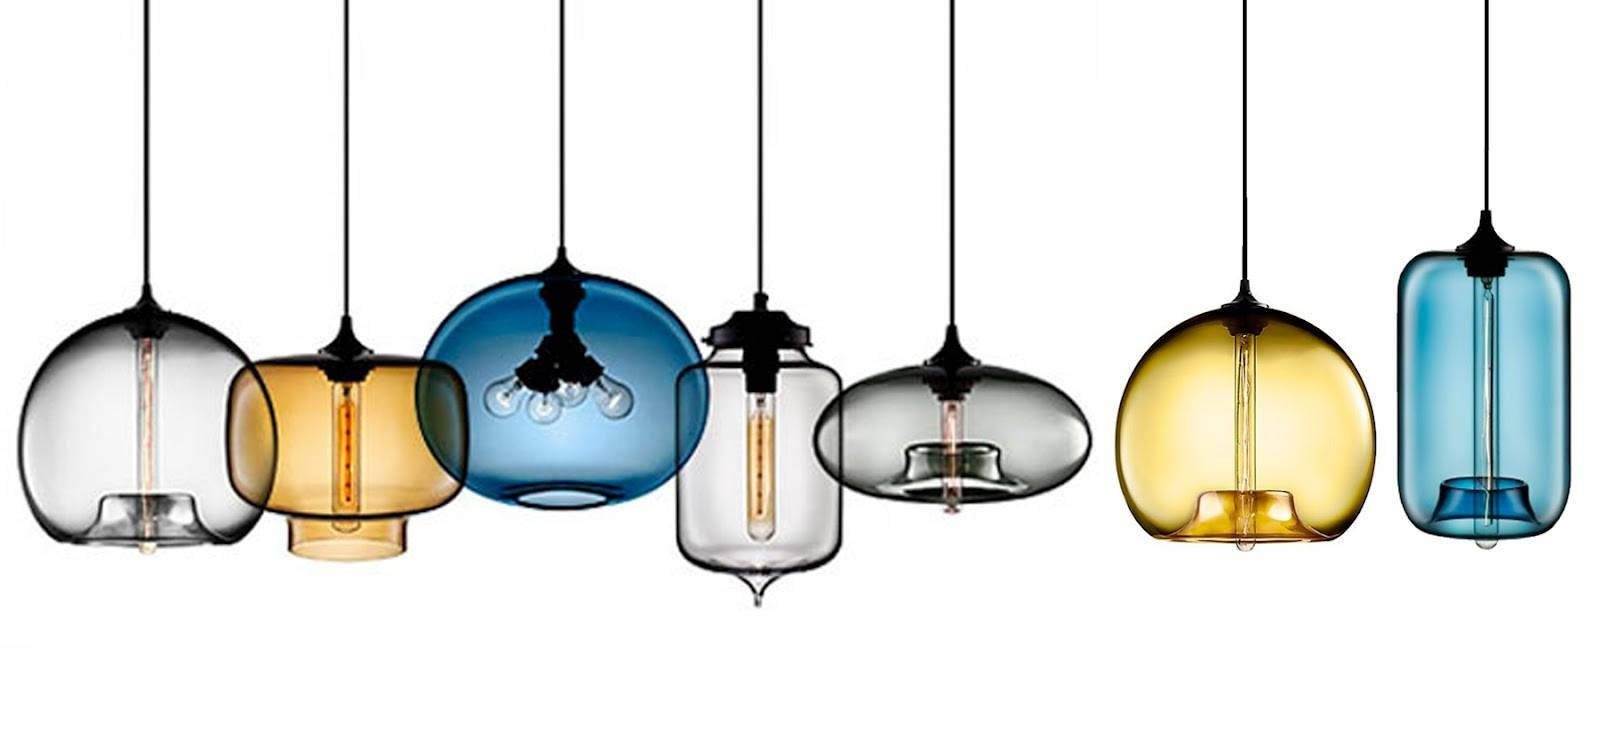 Hand Blown Glass Pendant Lights - Baby-Exit with regard to Hand Blown Glass Pendants (Image 10 of 15)